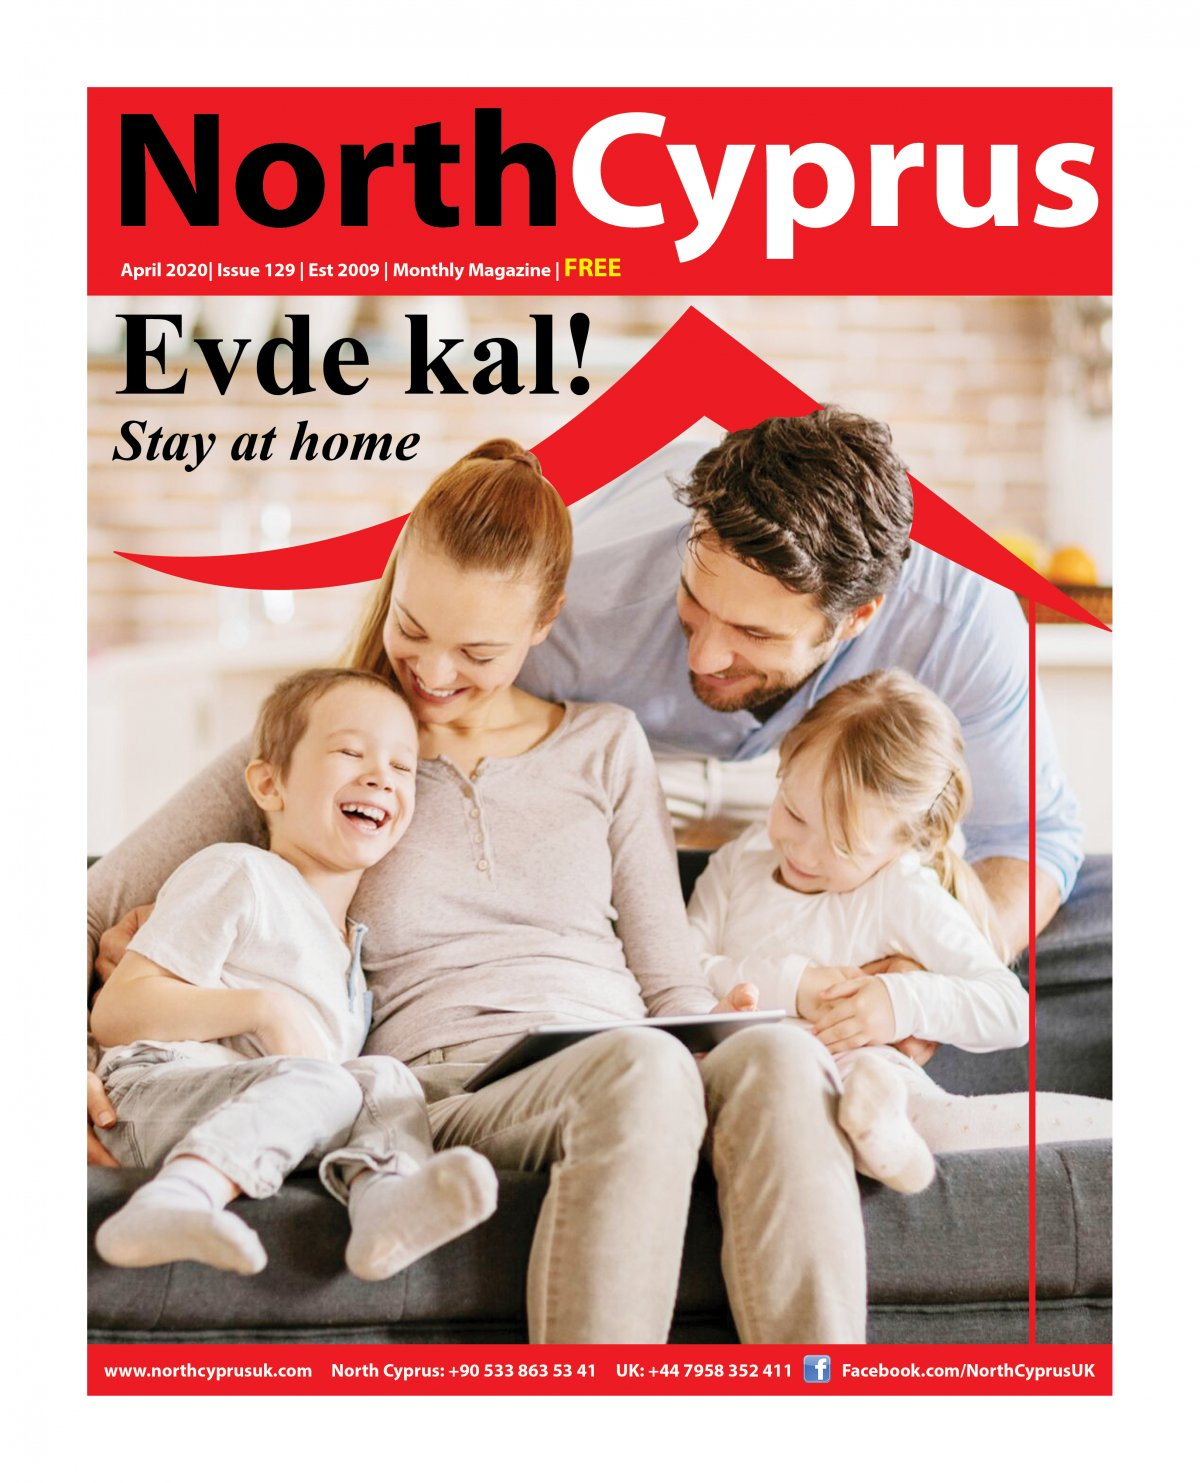 North Cyprus UK - 14.04.2020 Manşeti